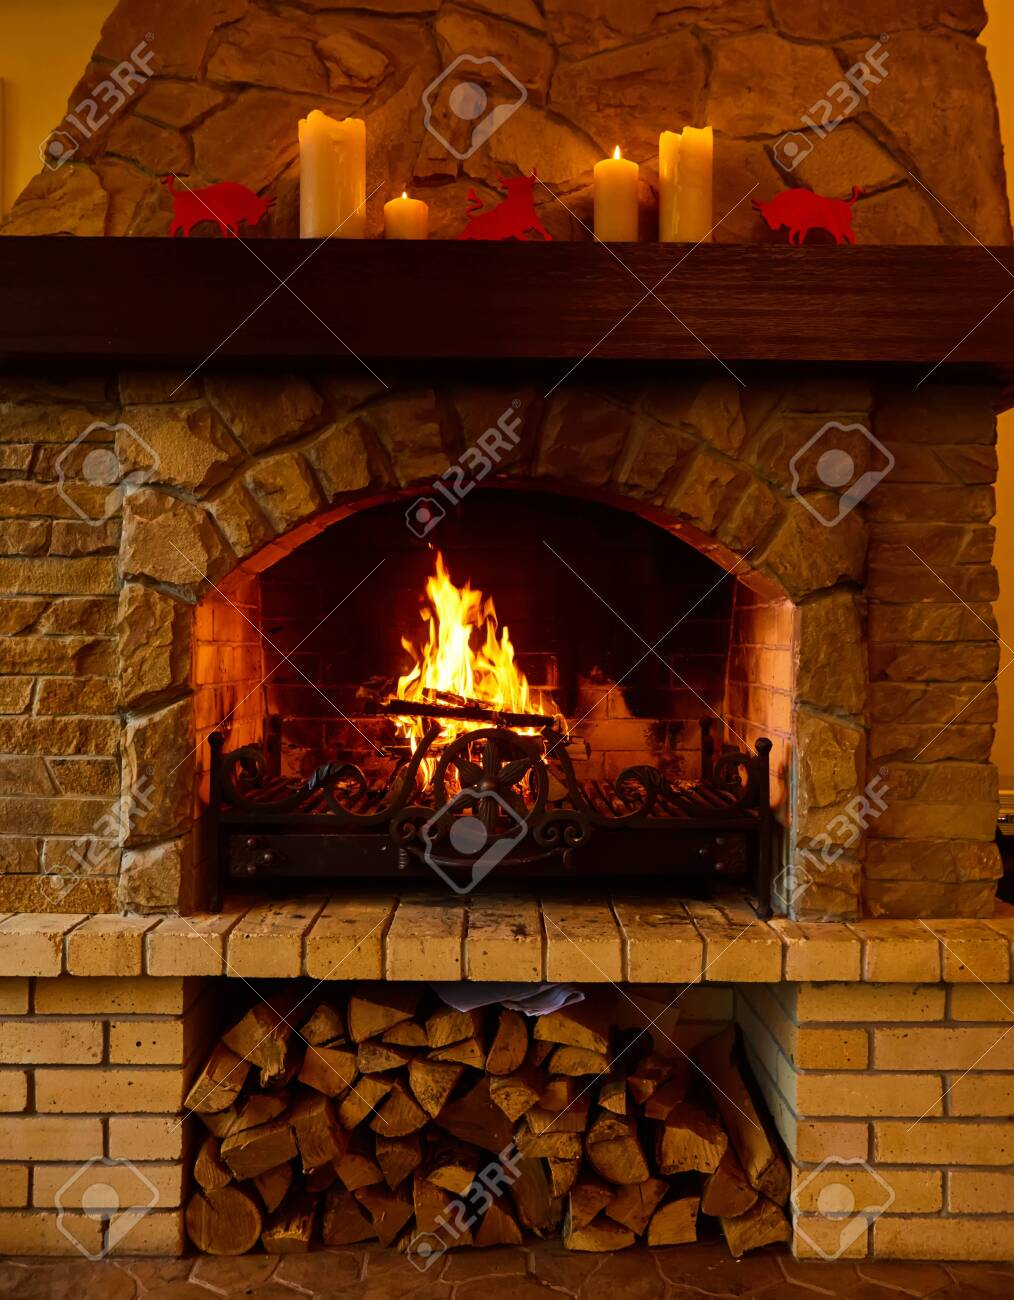 Warm cozy fireplace with real wood burning in it. Cozy winter concept. Christmas and travel background with space for your text. - 157441421